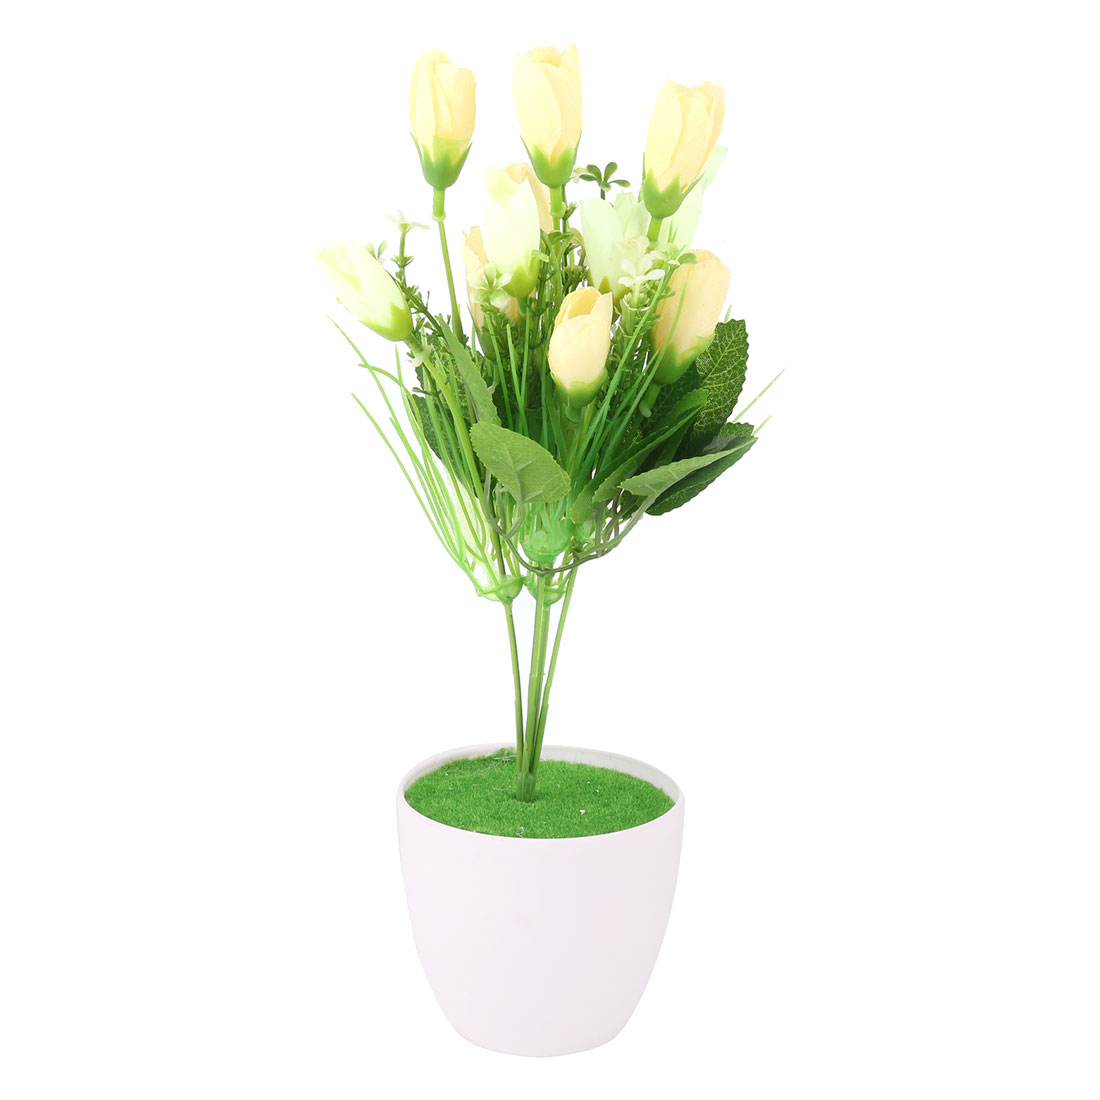 Meeting Room Rural Style DIY Handcraft Decor Artificial Simulation Flower Plant